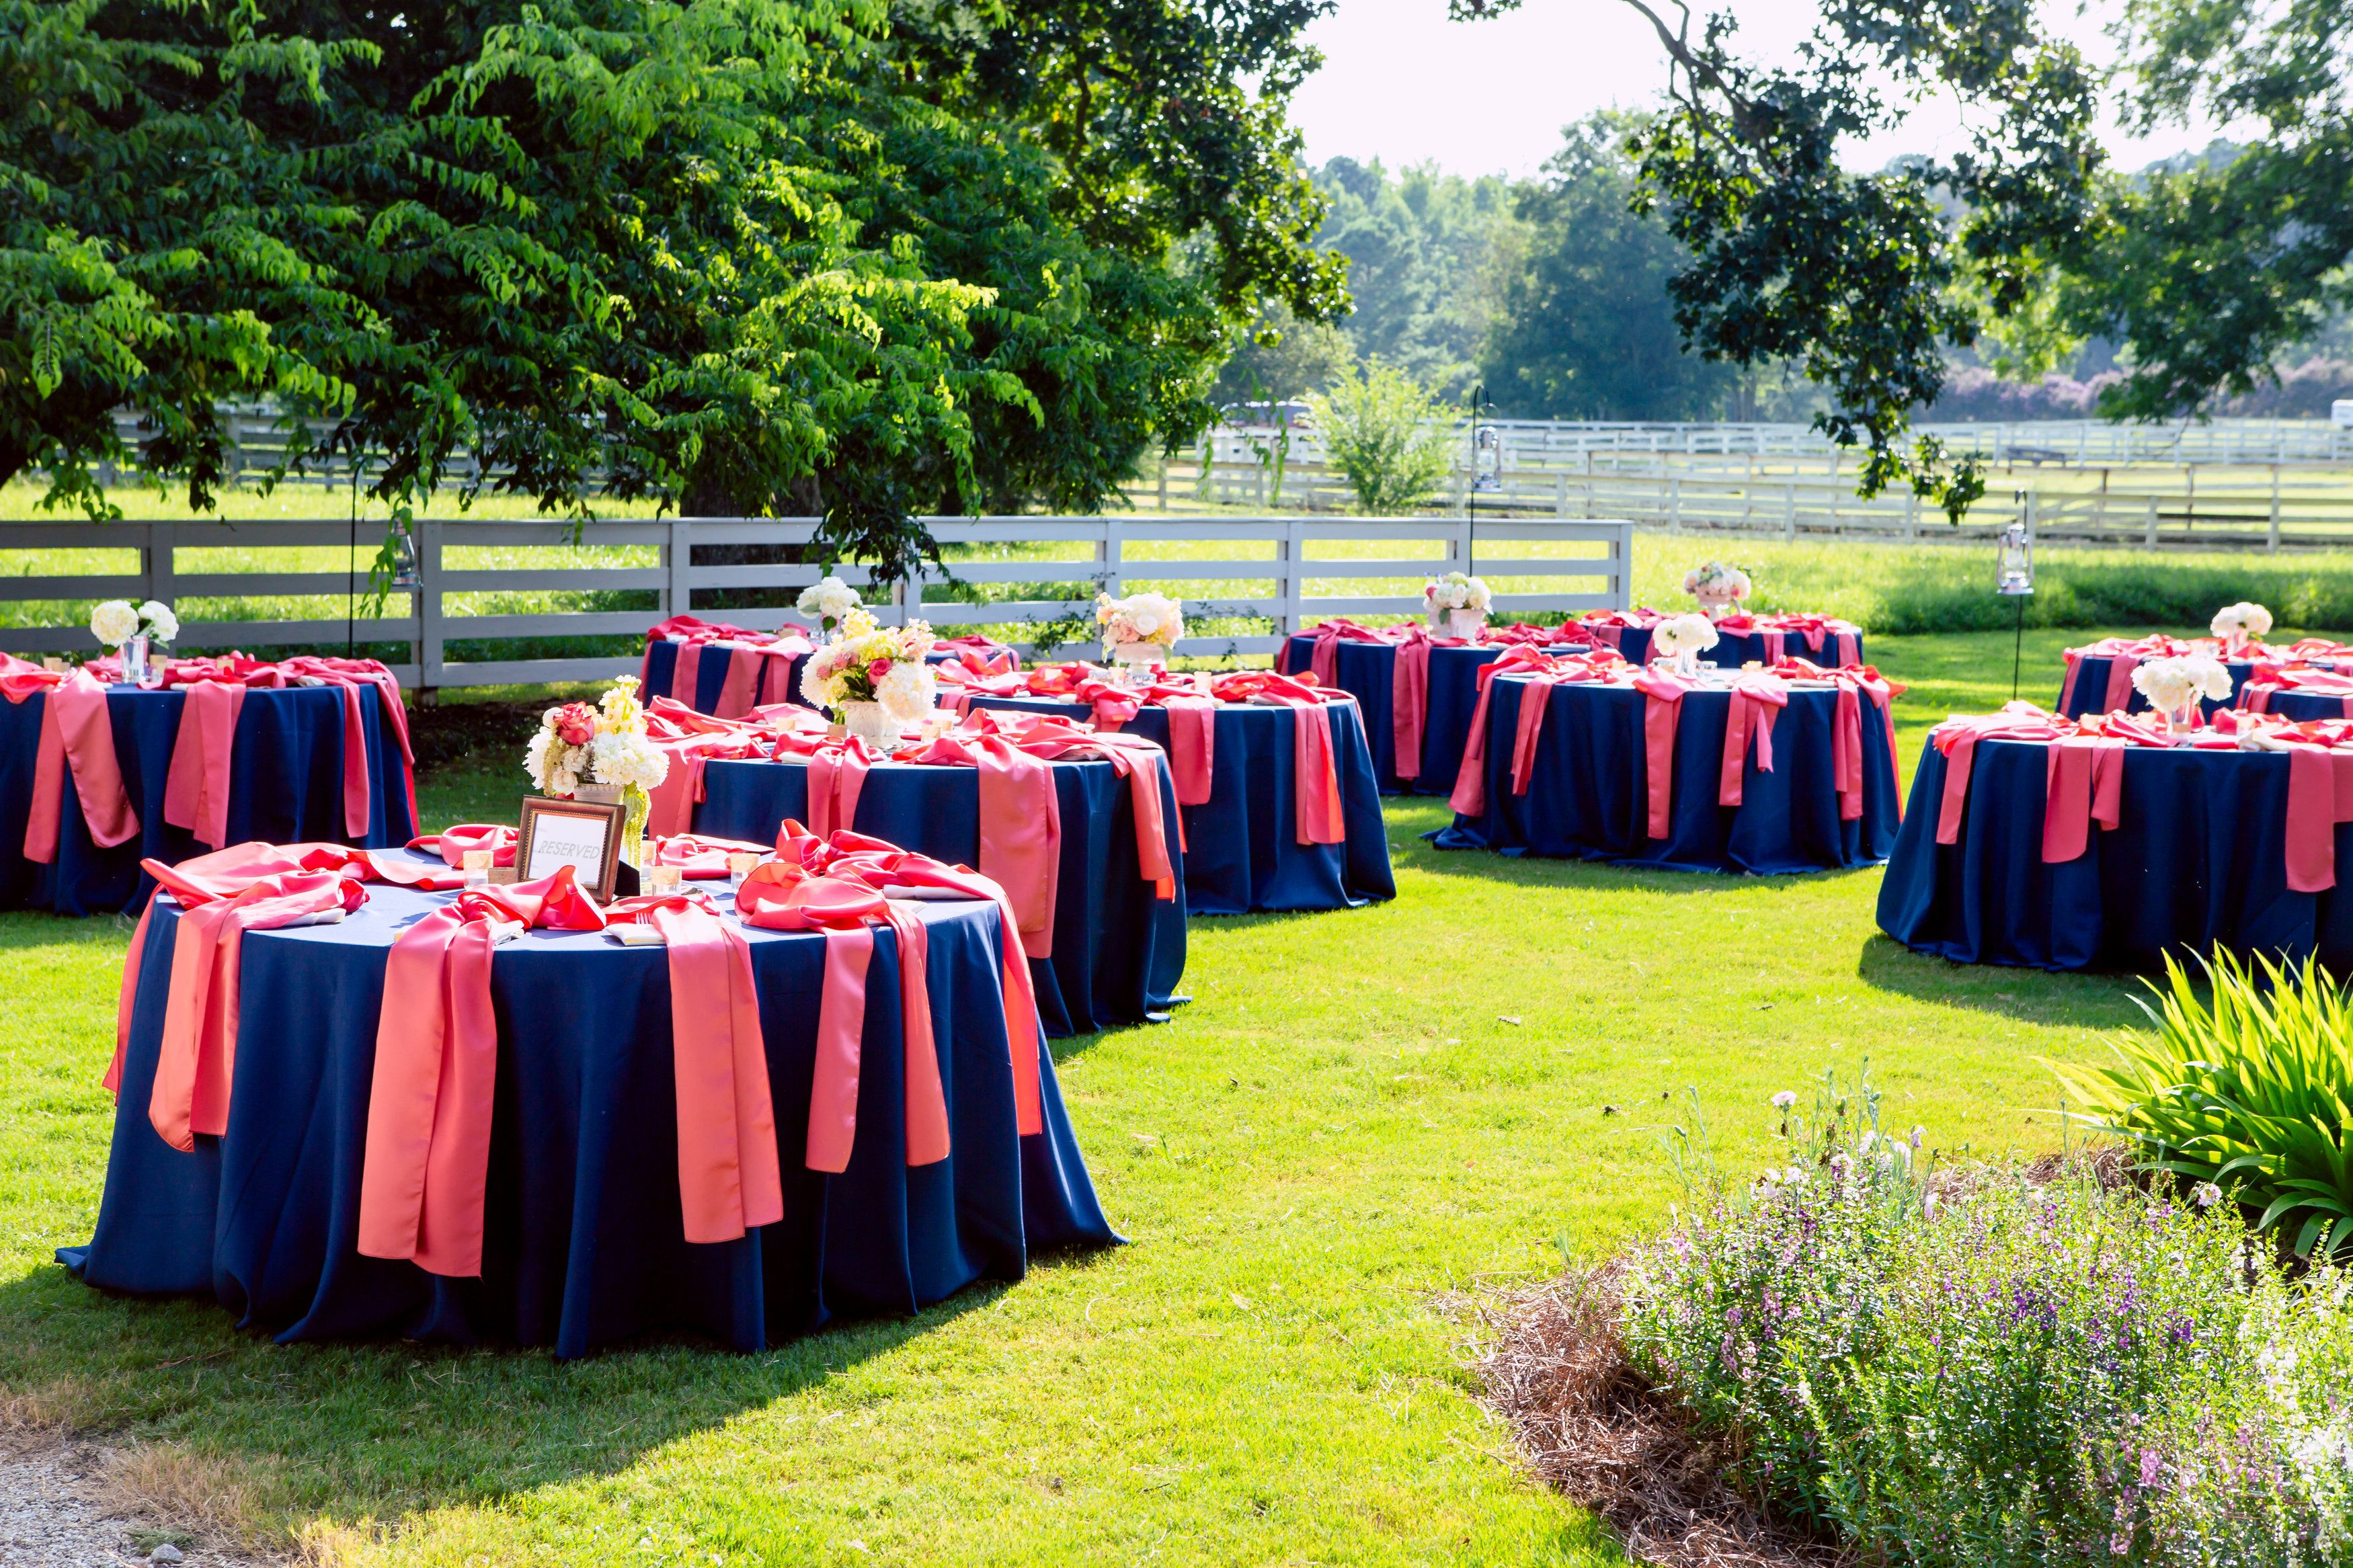 Aren't these #outdoortables so #lovely, #bright + #cheerful?!  ::Jordan + Michael's cheerful outdoor wedding at Cloverleaf Farms in Arnoldsville, Georgia:: #outdoorwedding #pink #blue #summerwedding #grass #cloverleaffarm #weddingphotography